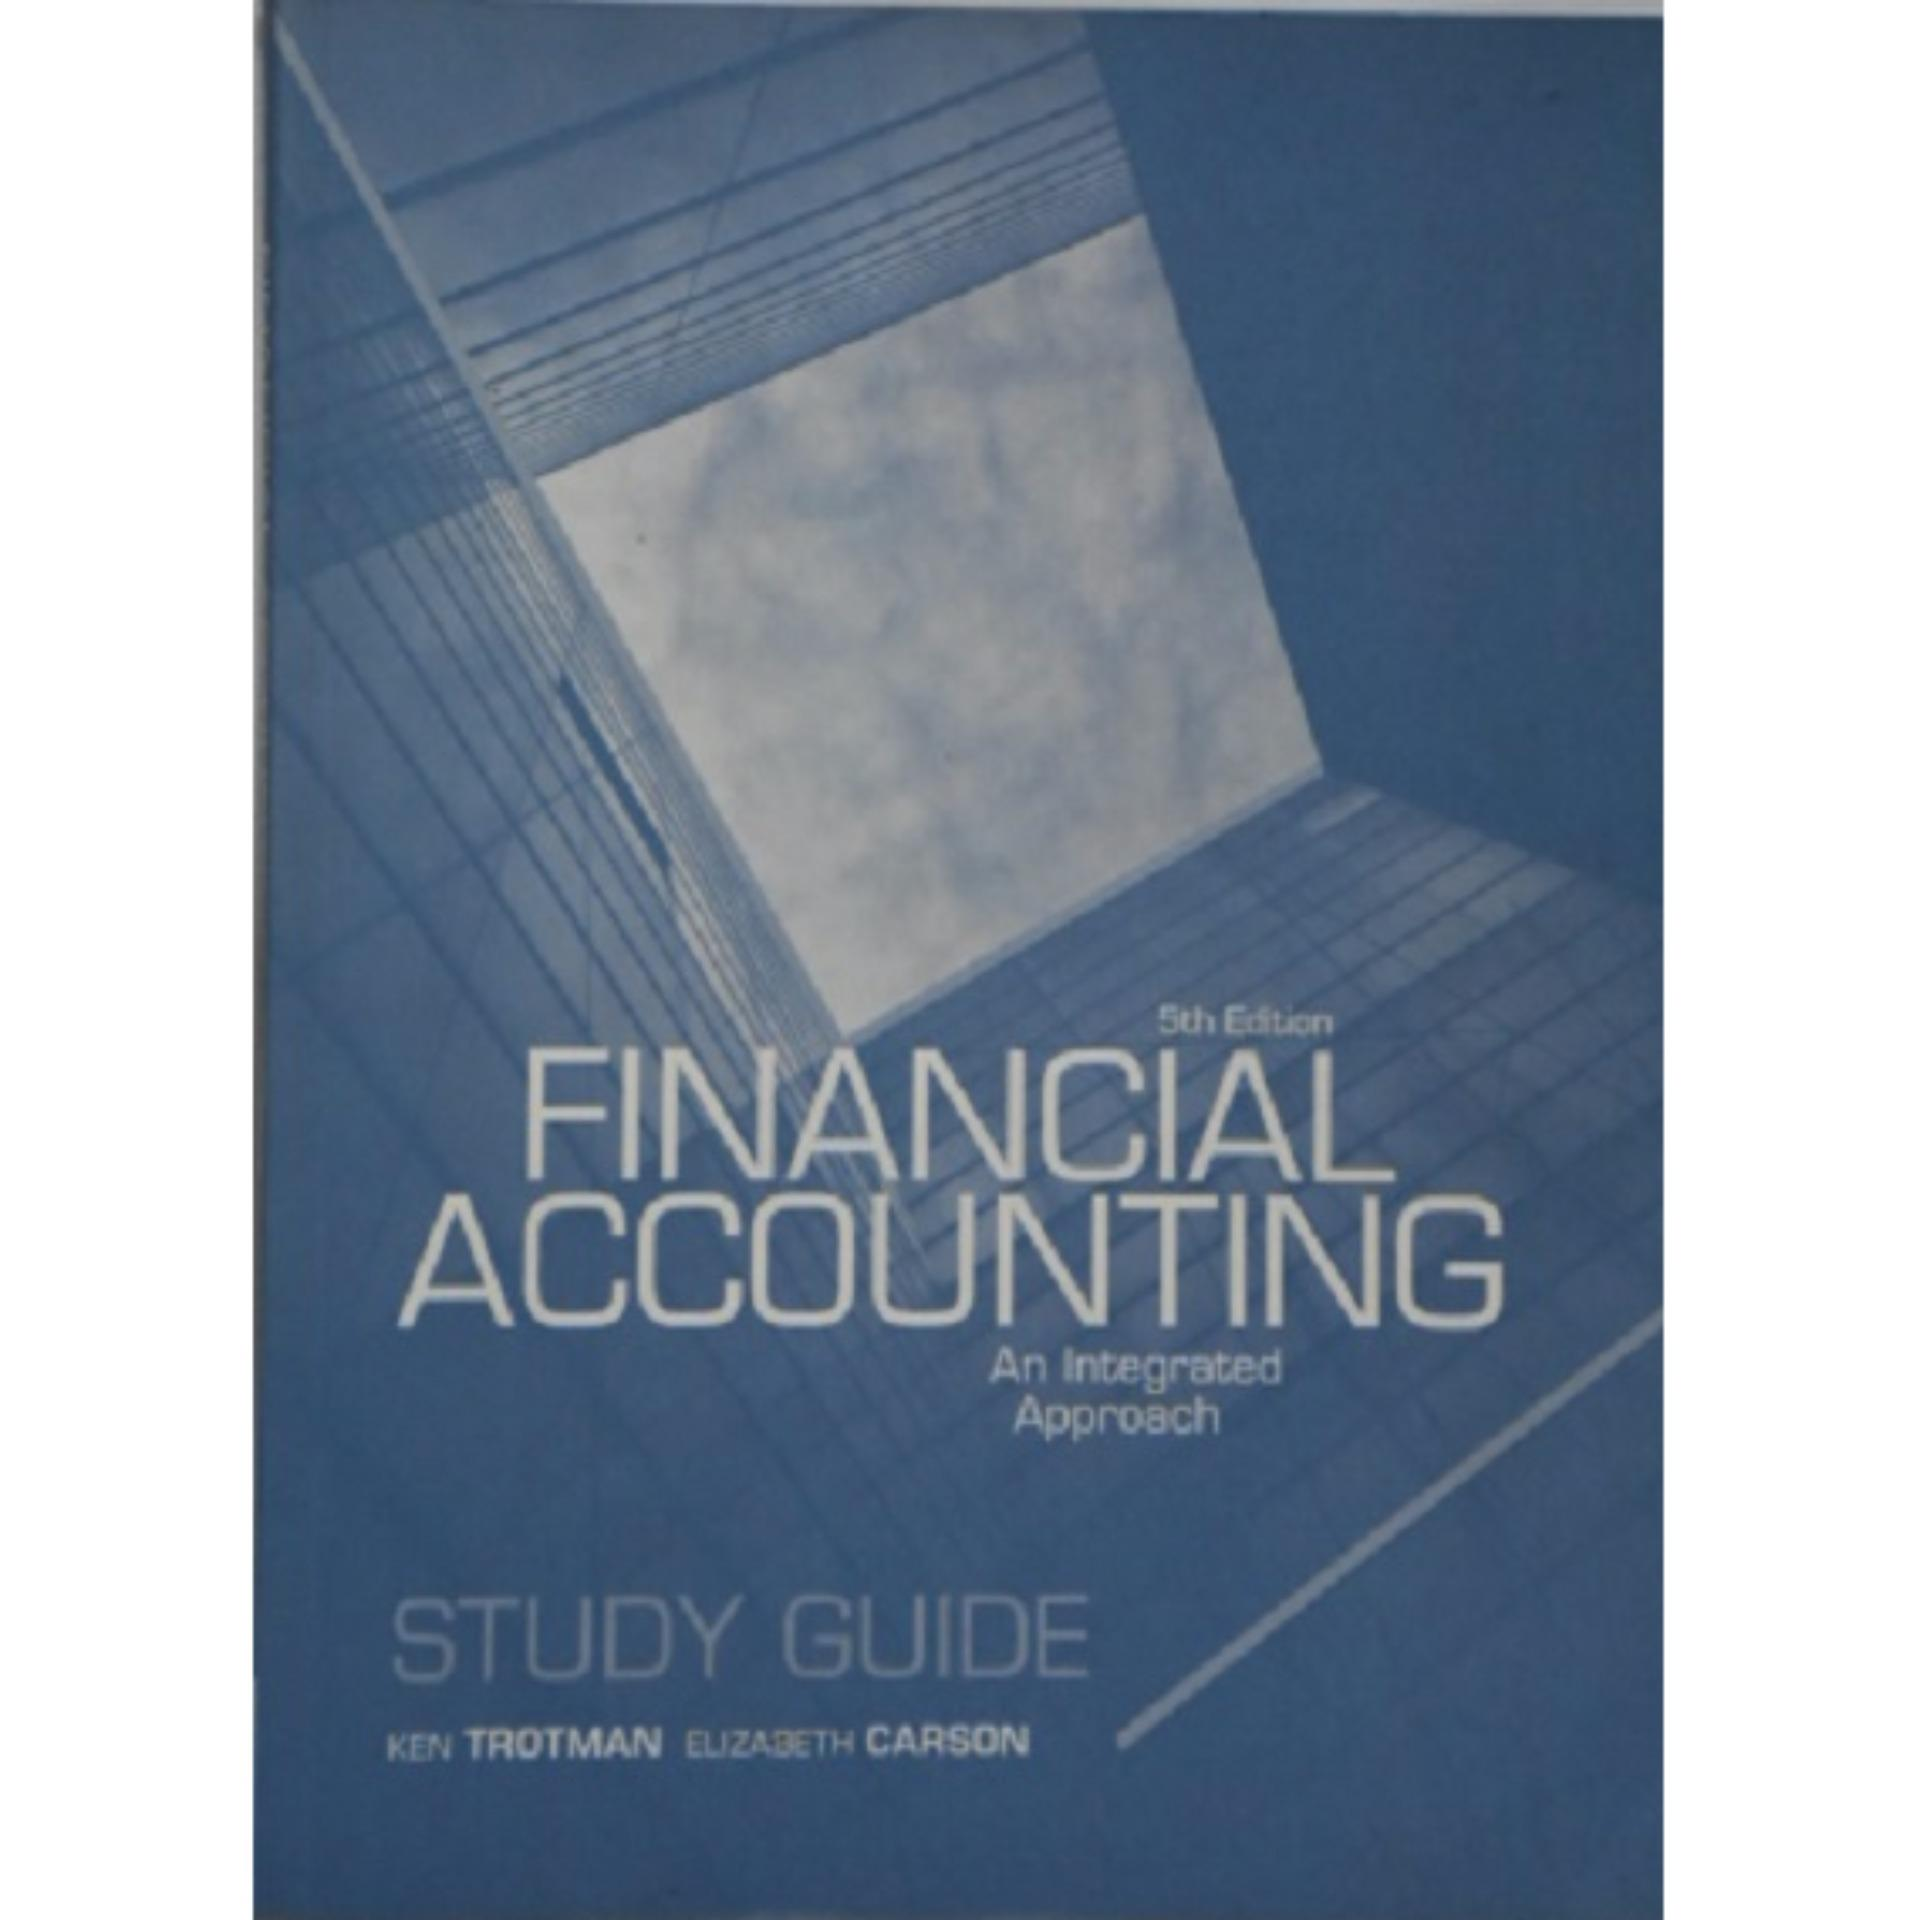 Financial Accounting Student Study Guide 5th Edition